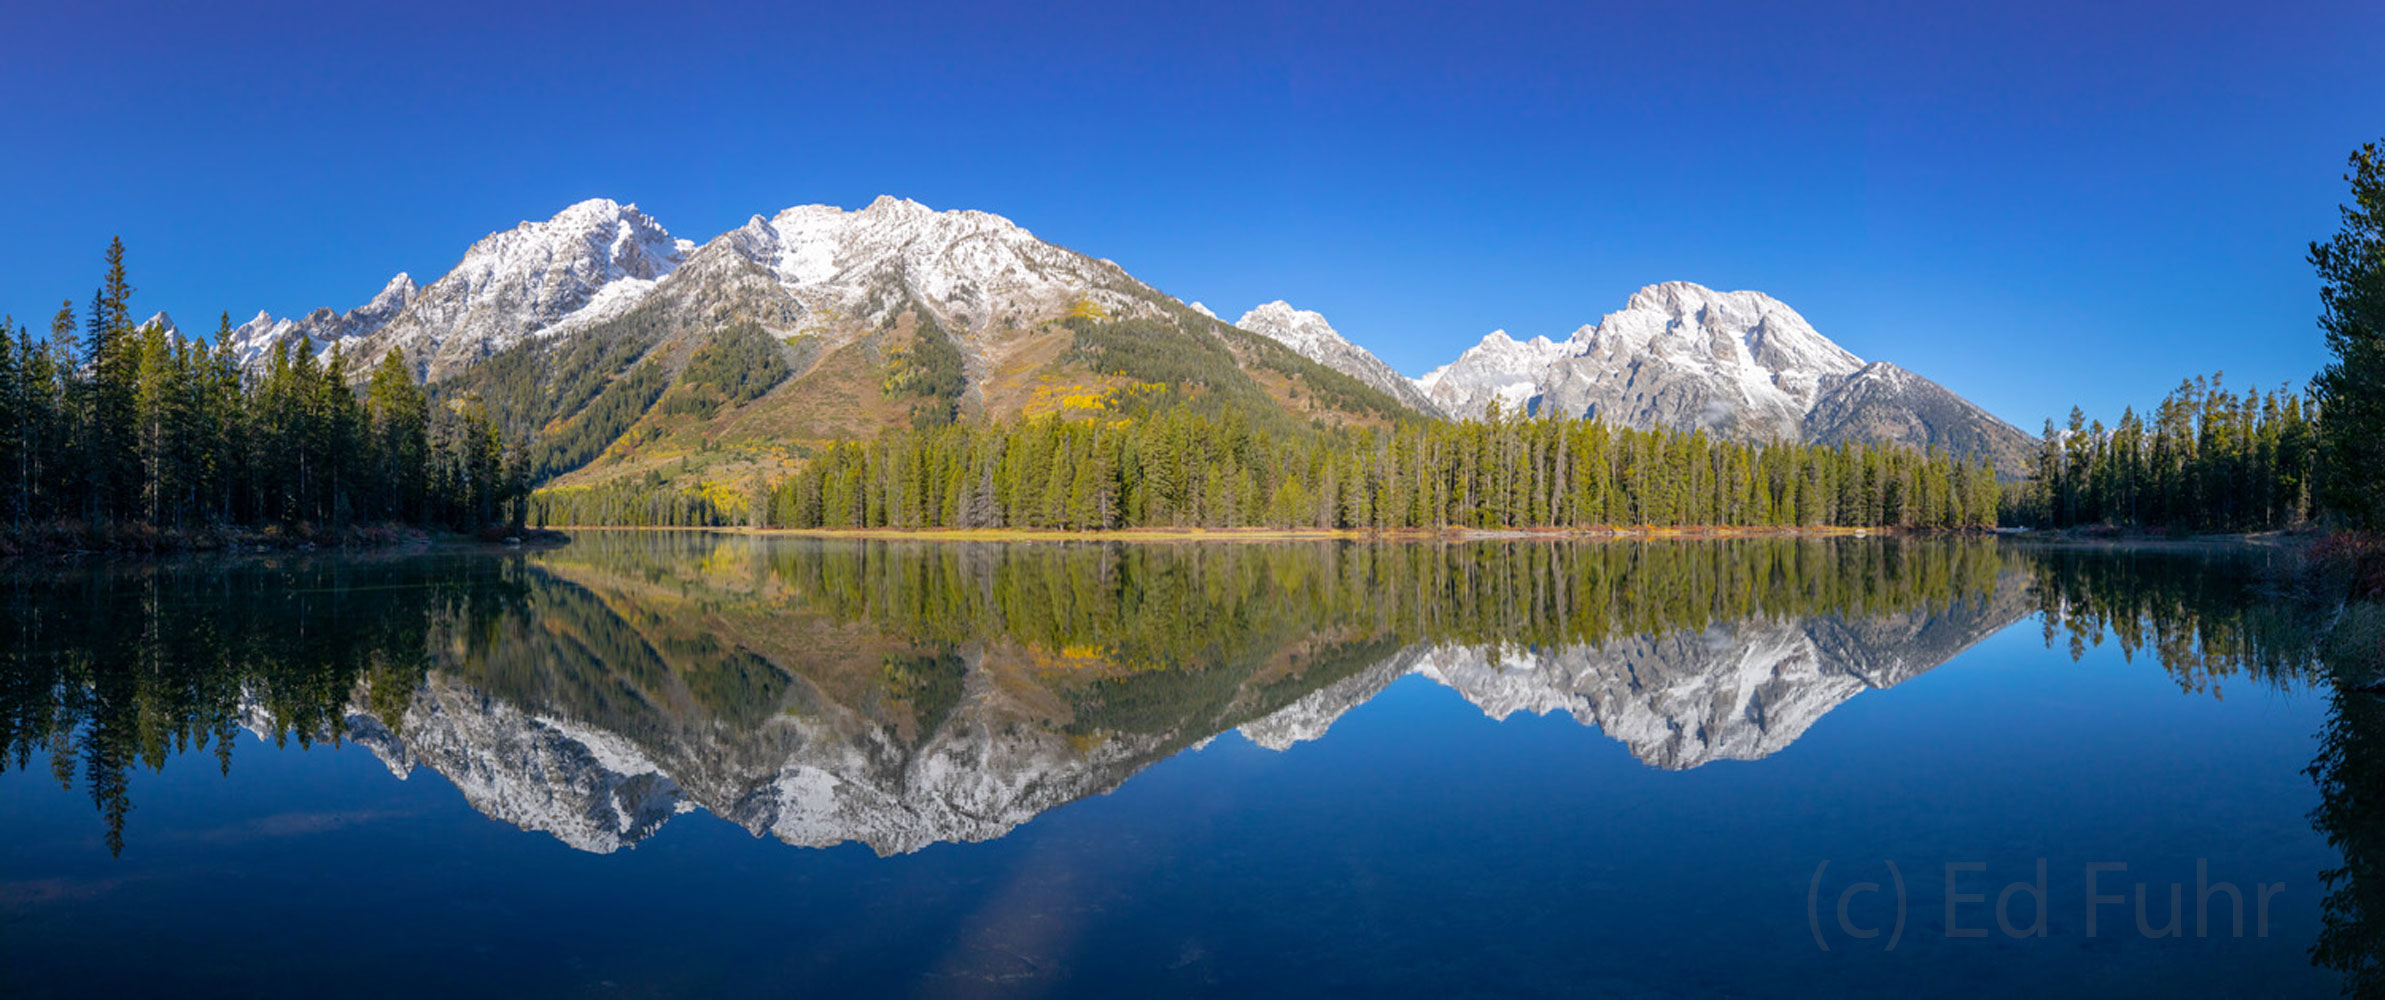 In the perfect stillness of morning, String Lake mirrors the newly coated Teton range, even as pockets of aspen hold on to their...